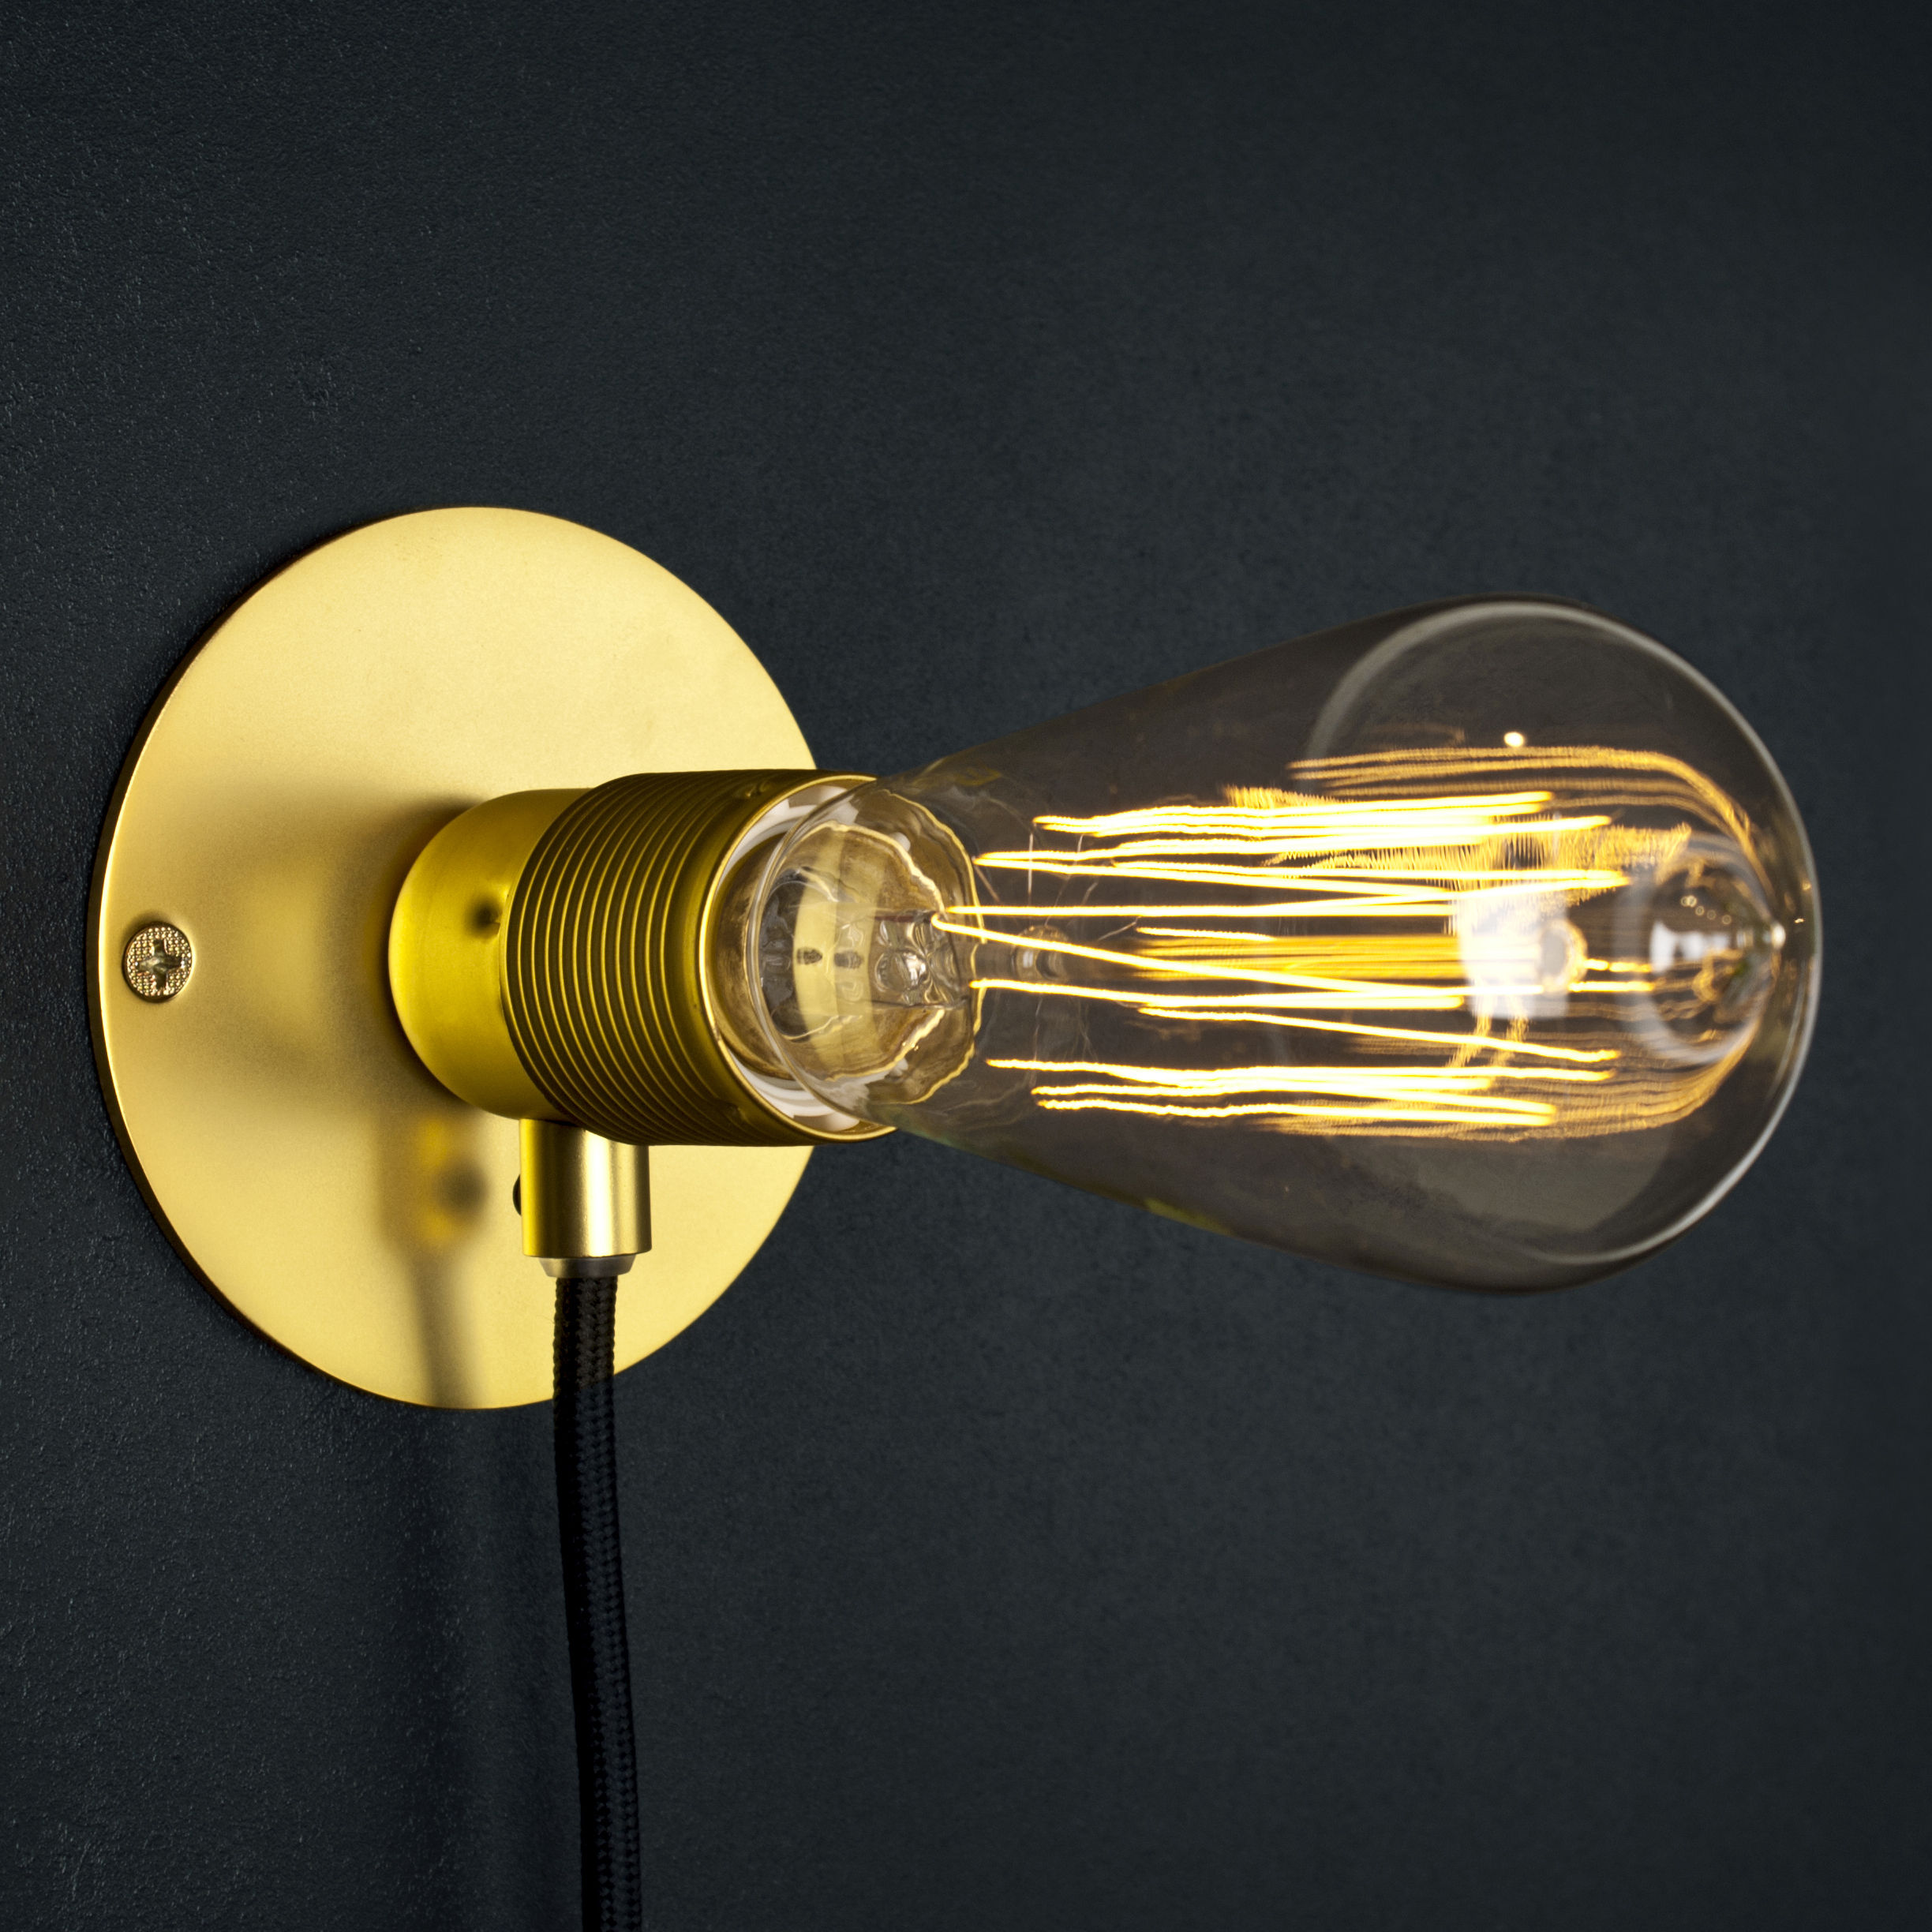 Wall Sconce Lamp Kit : Frama Kit Wall light - Small - ? 12 cm Brass by Frama